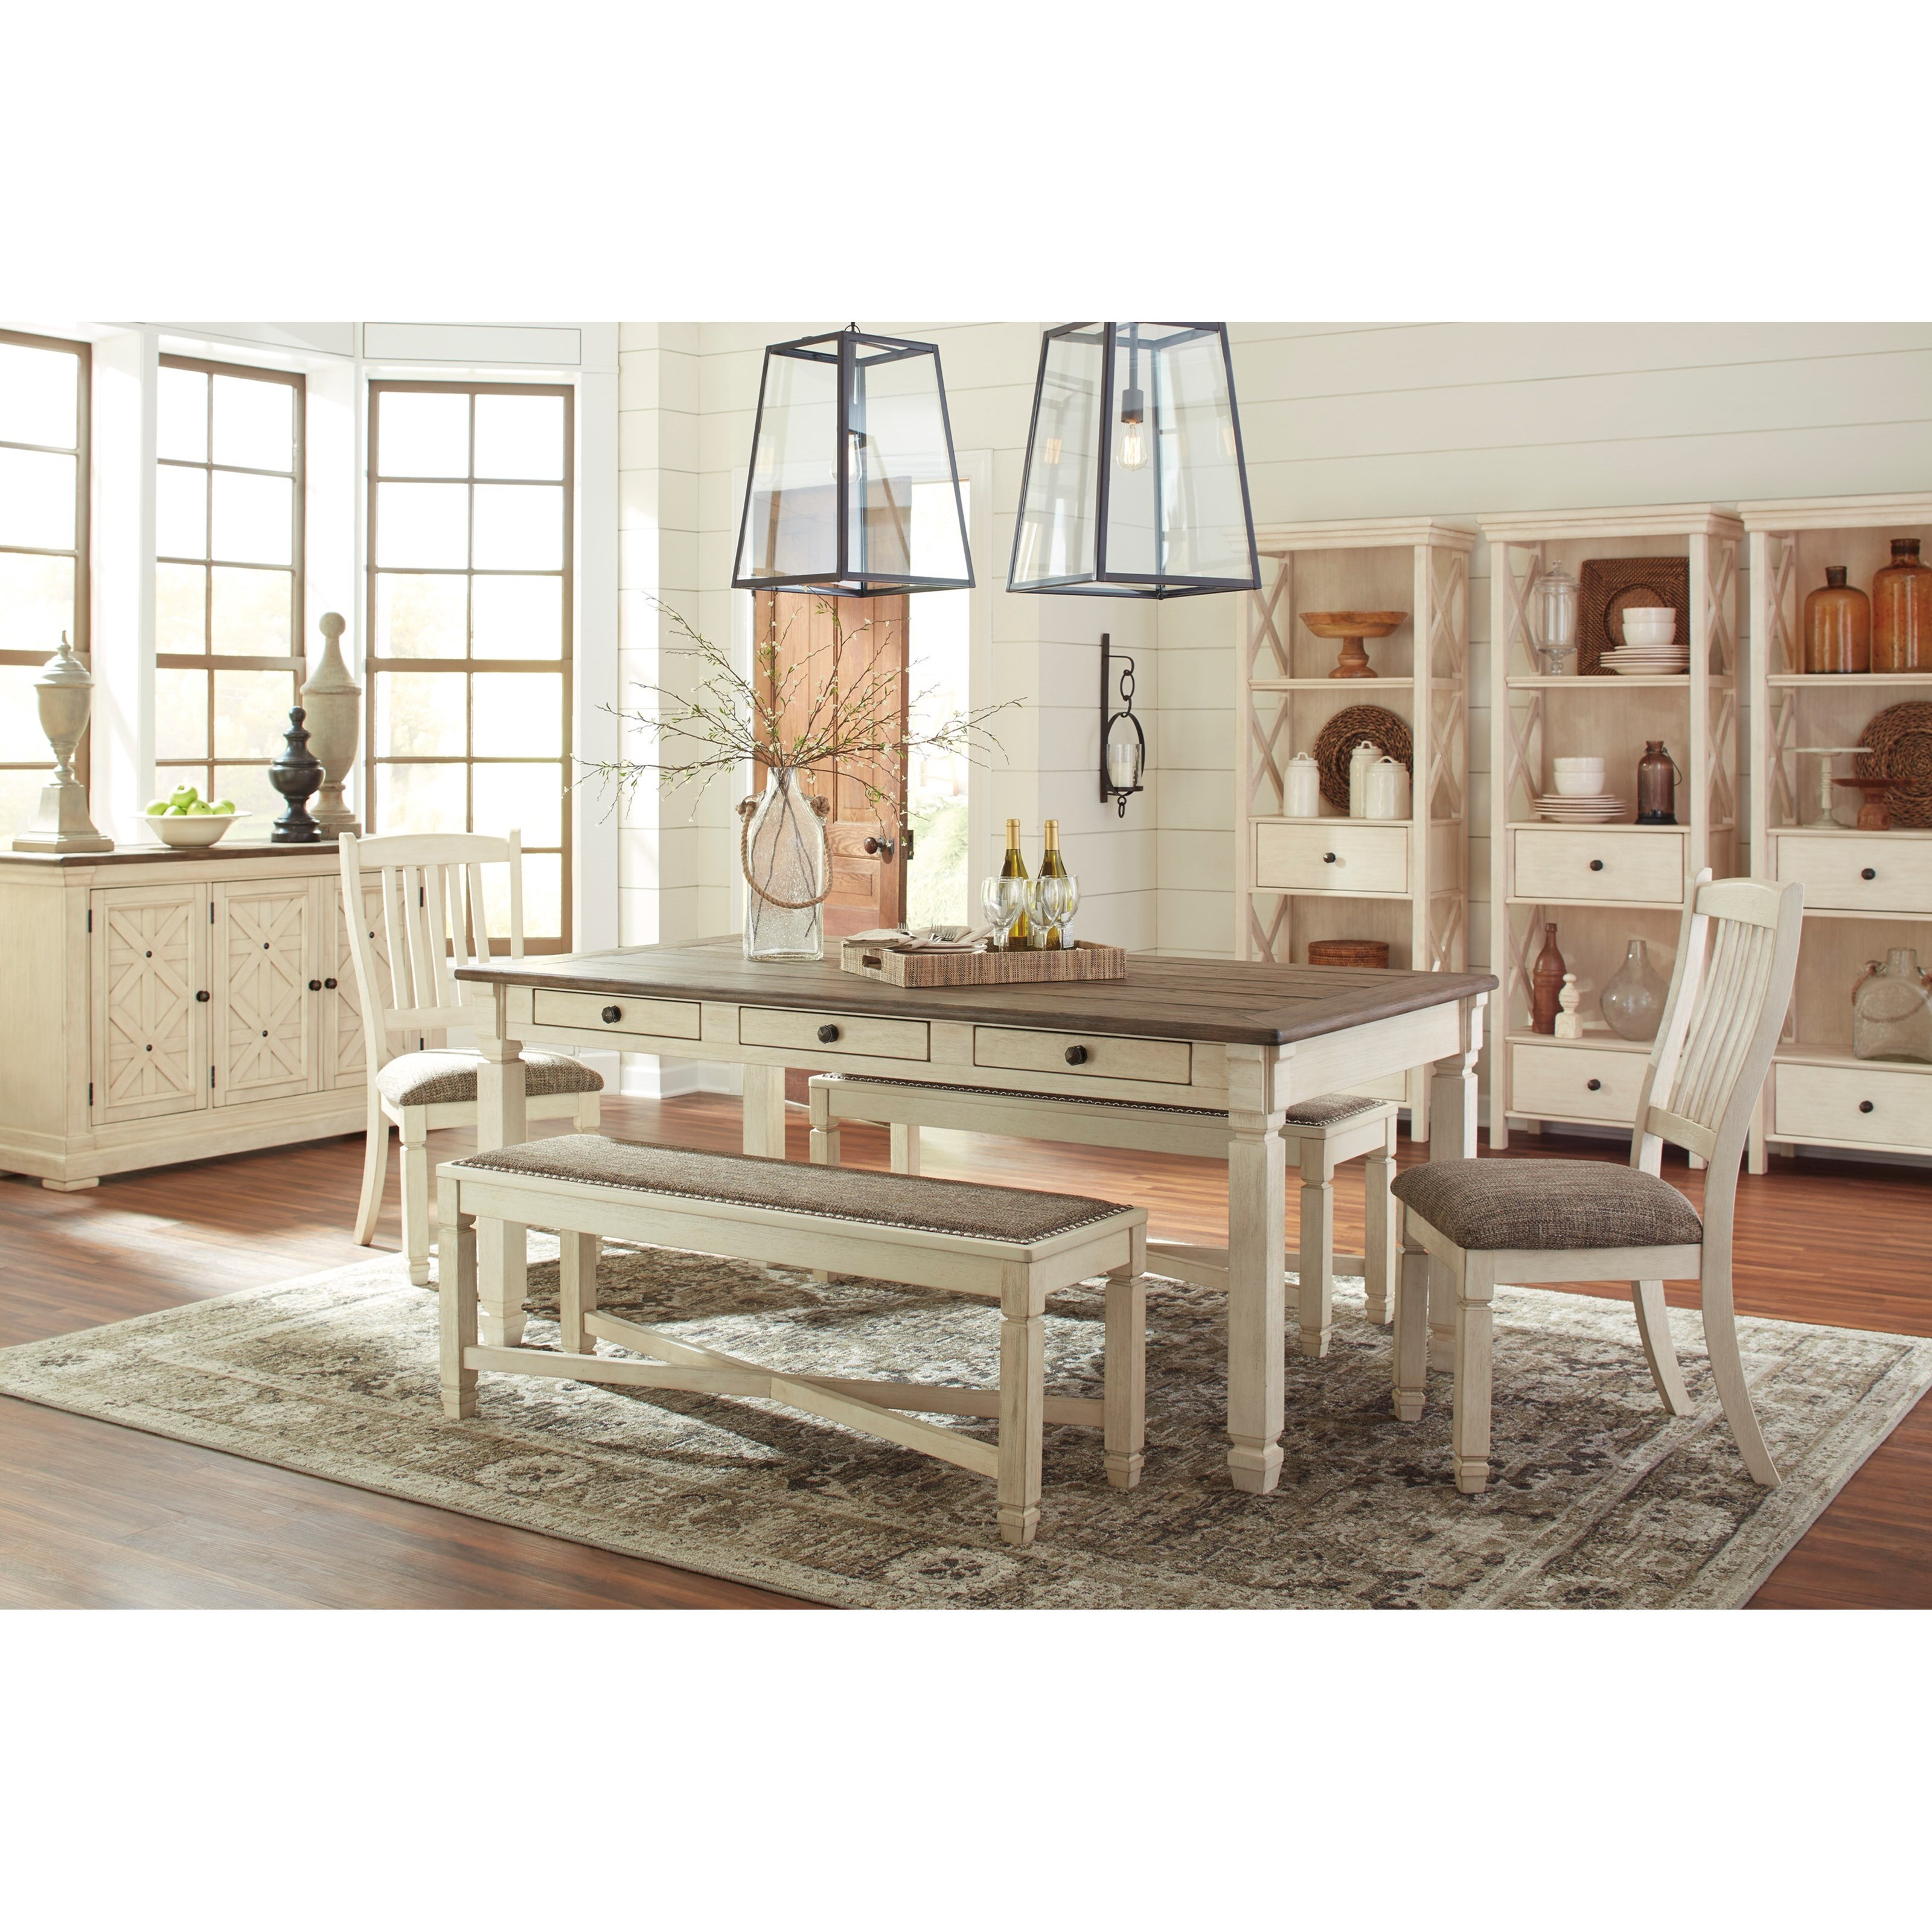 Signature Design By Ashley Bolanburg Casual Dining Room Group